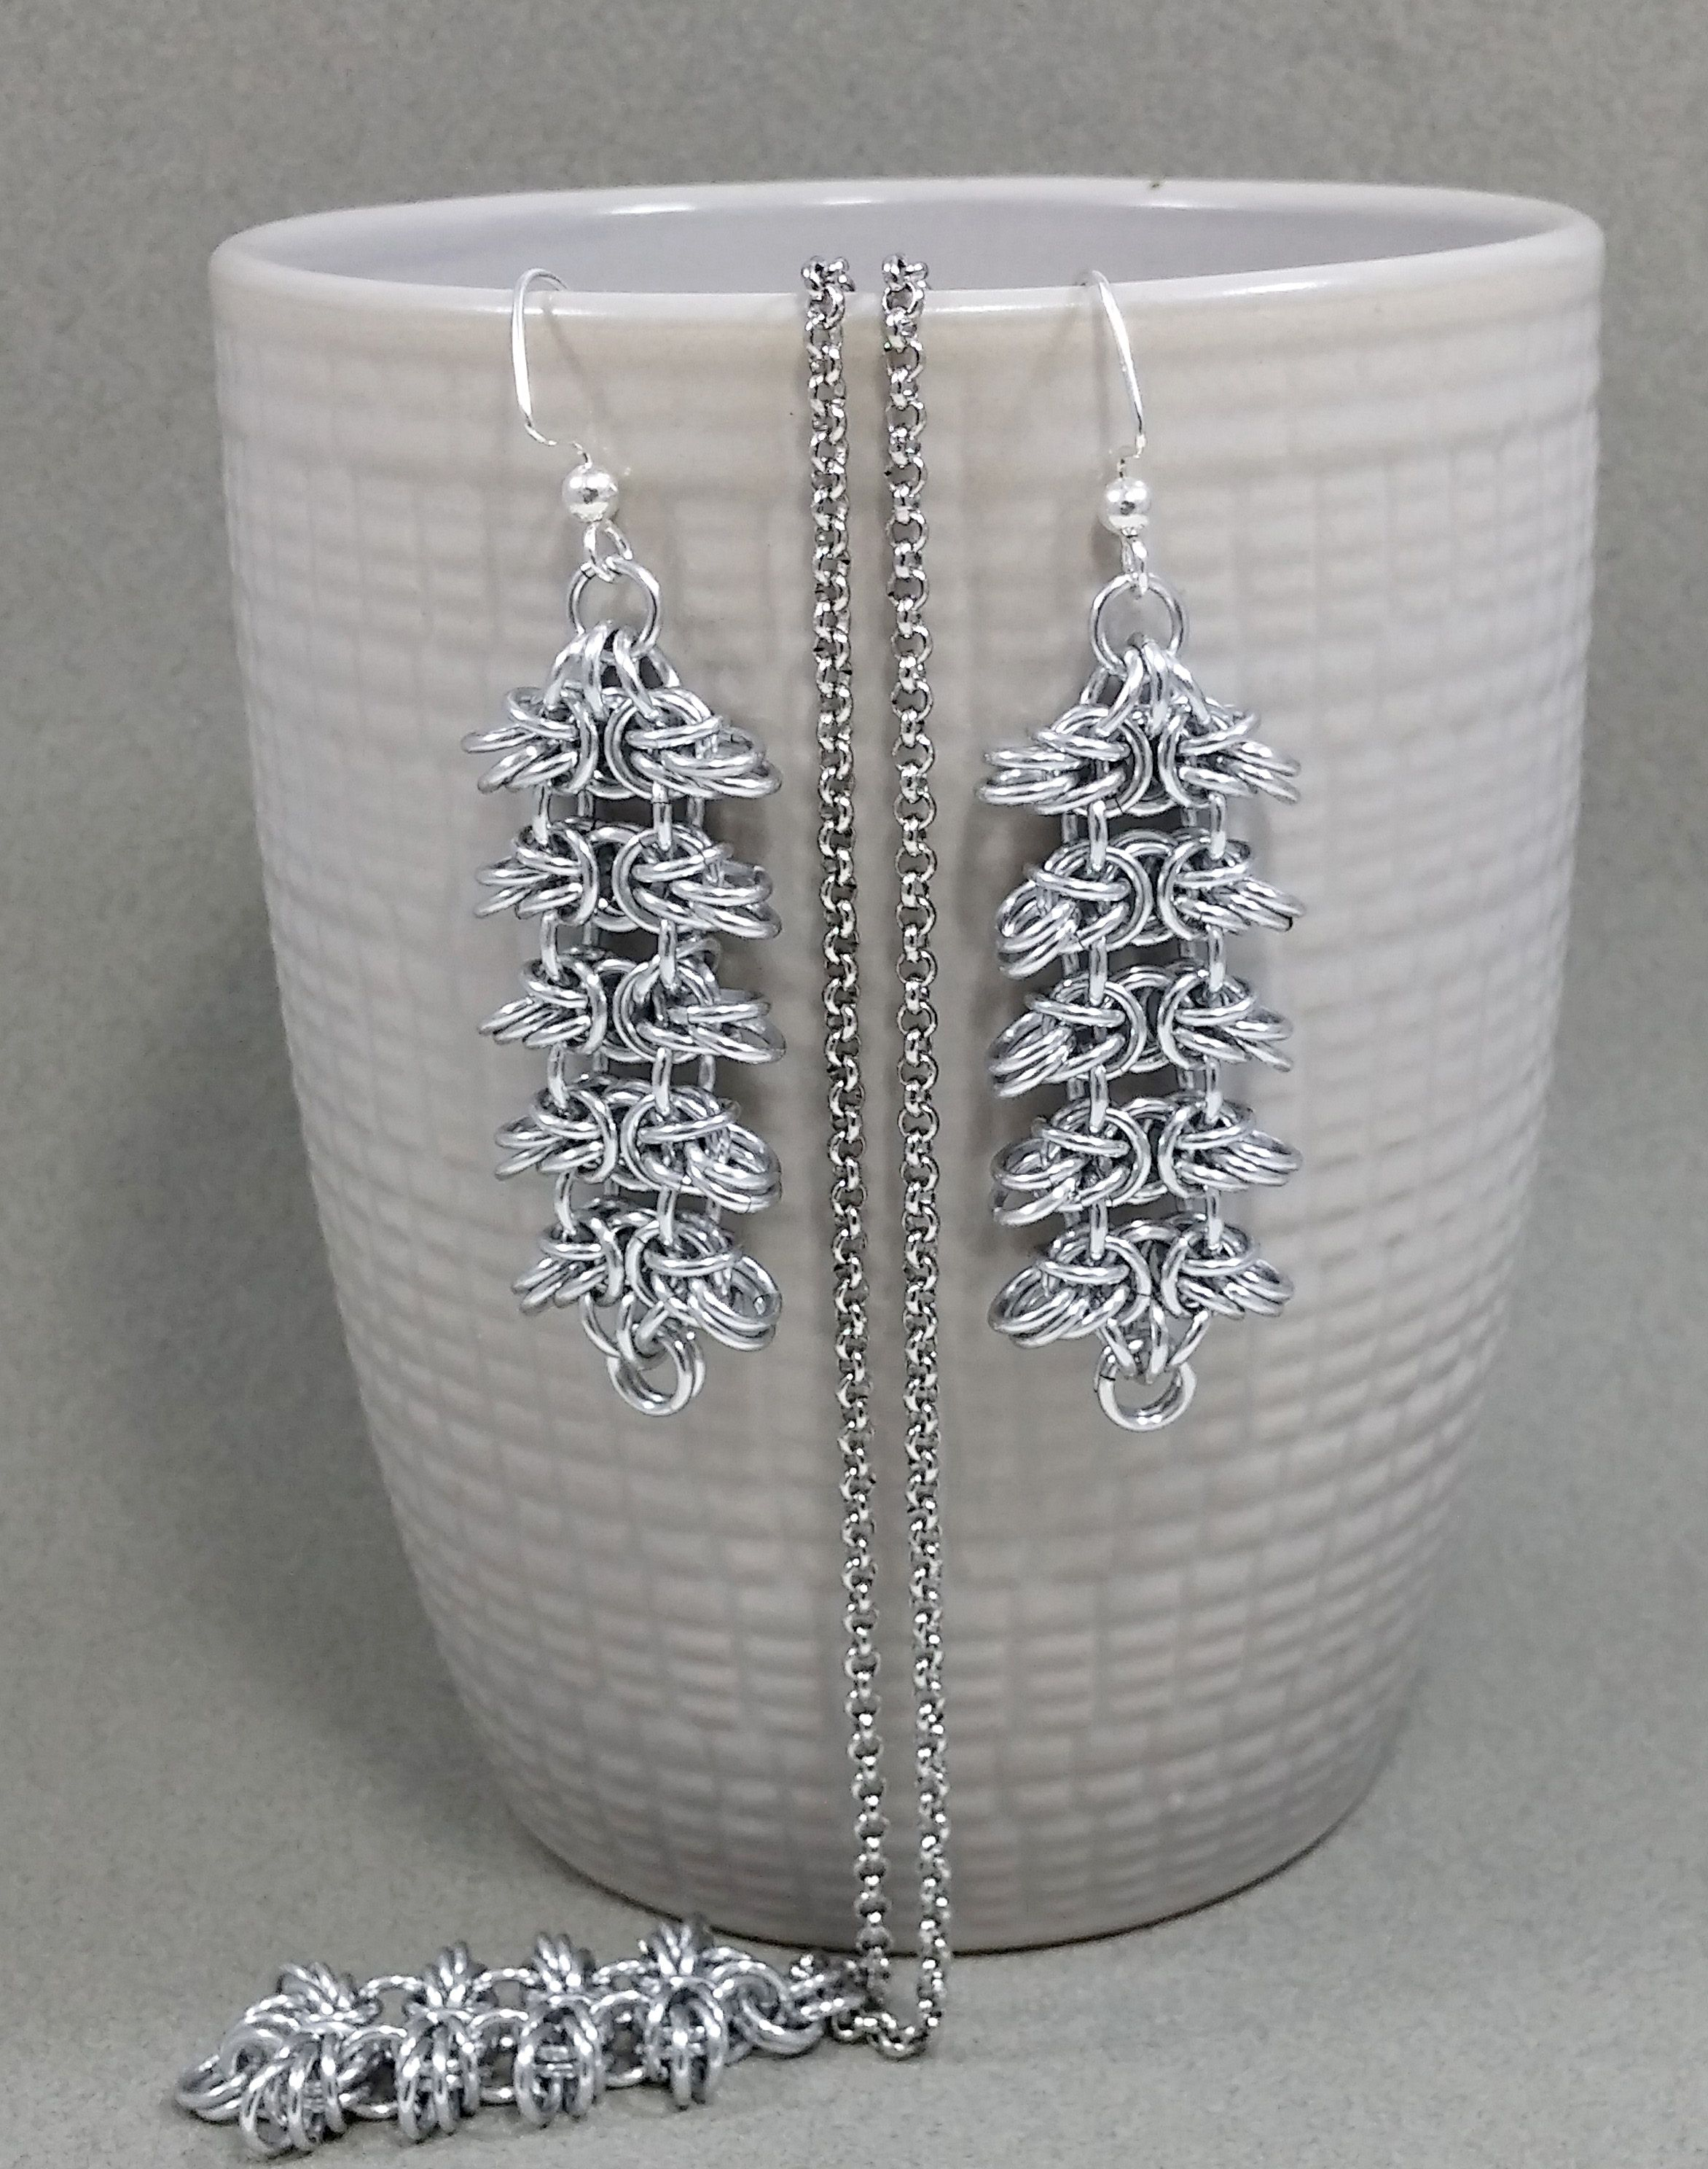 earrings silver jewelryset aluminium elegance everydaywear christmas christmastree necklace jewelry